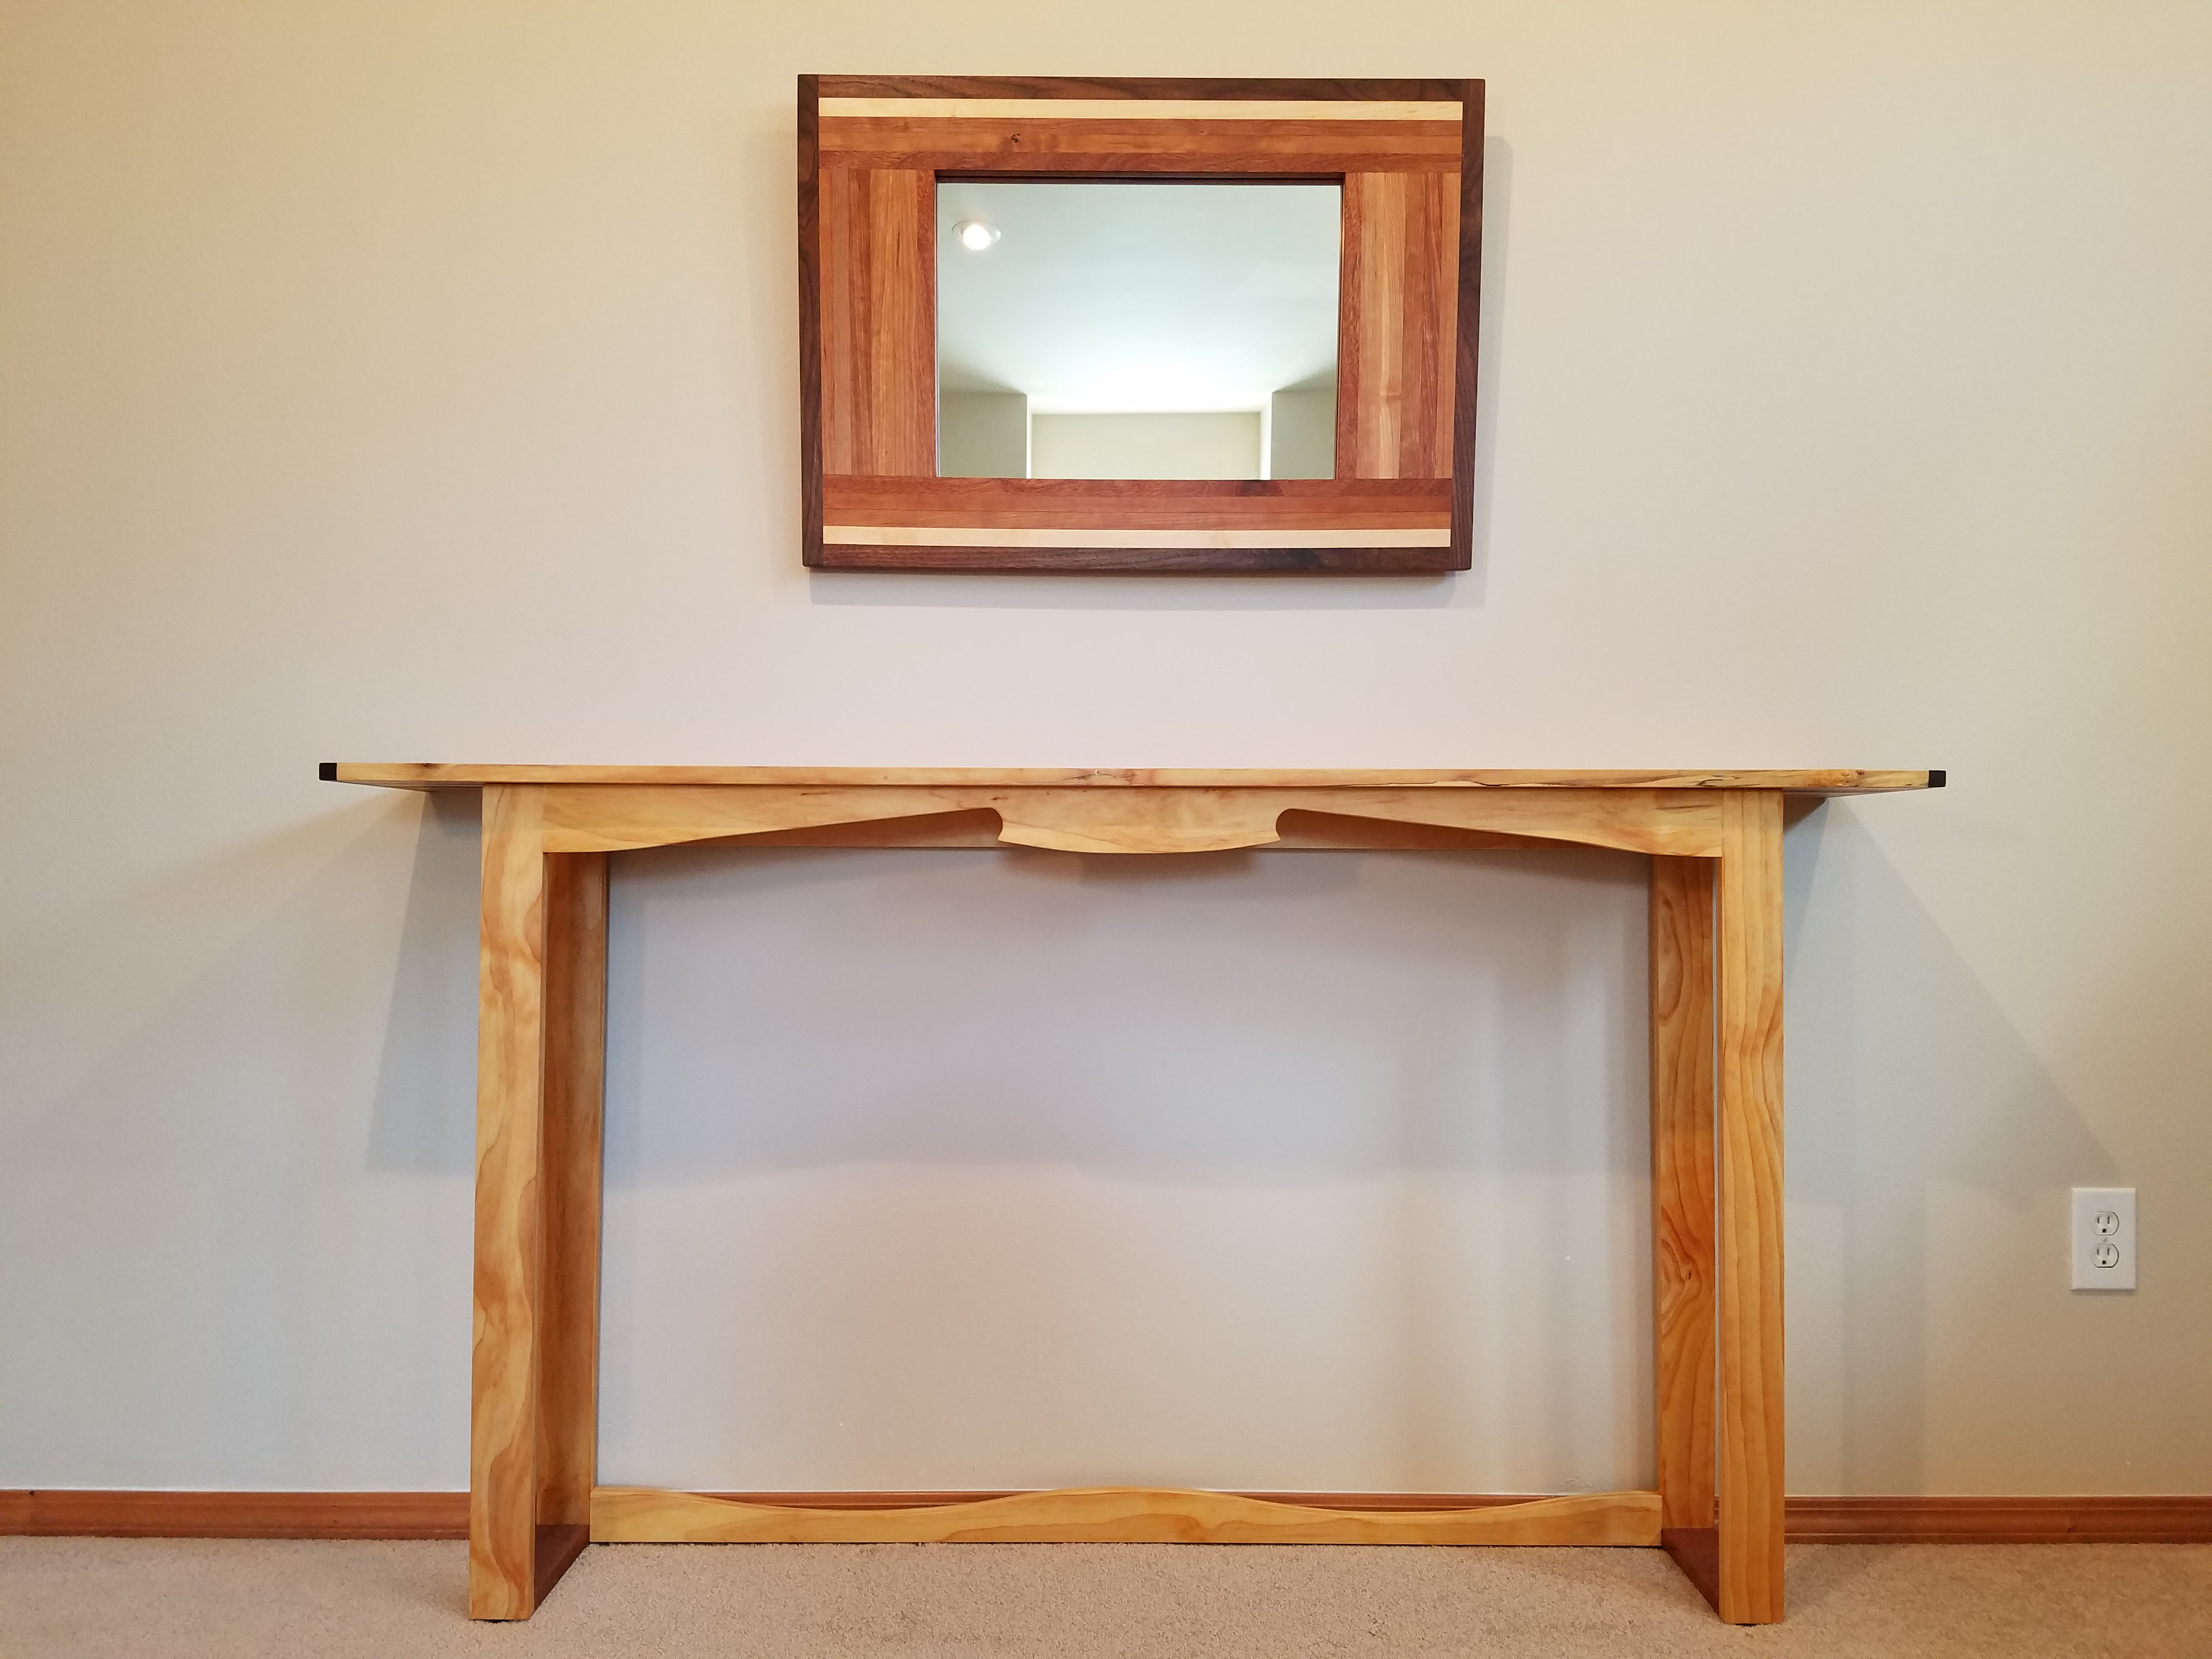 Wood Console Table With A Live Edge And Mirror — Handmade Natural Within Natural Wood Mirrored Media Console Tables (View 6 of 20)